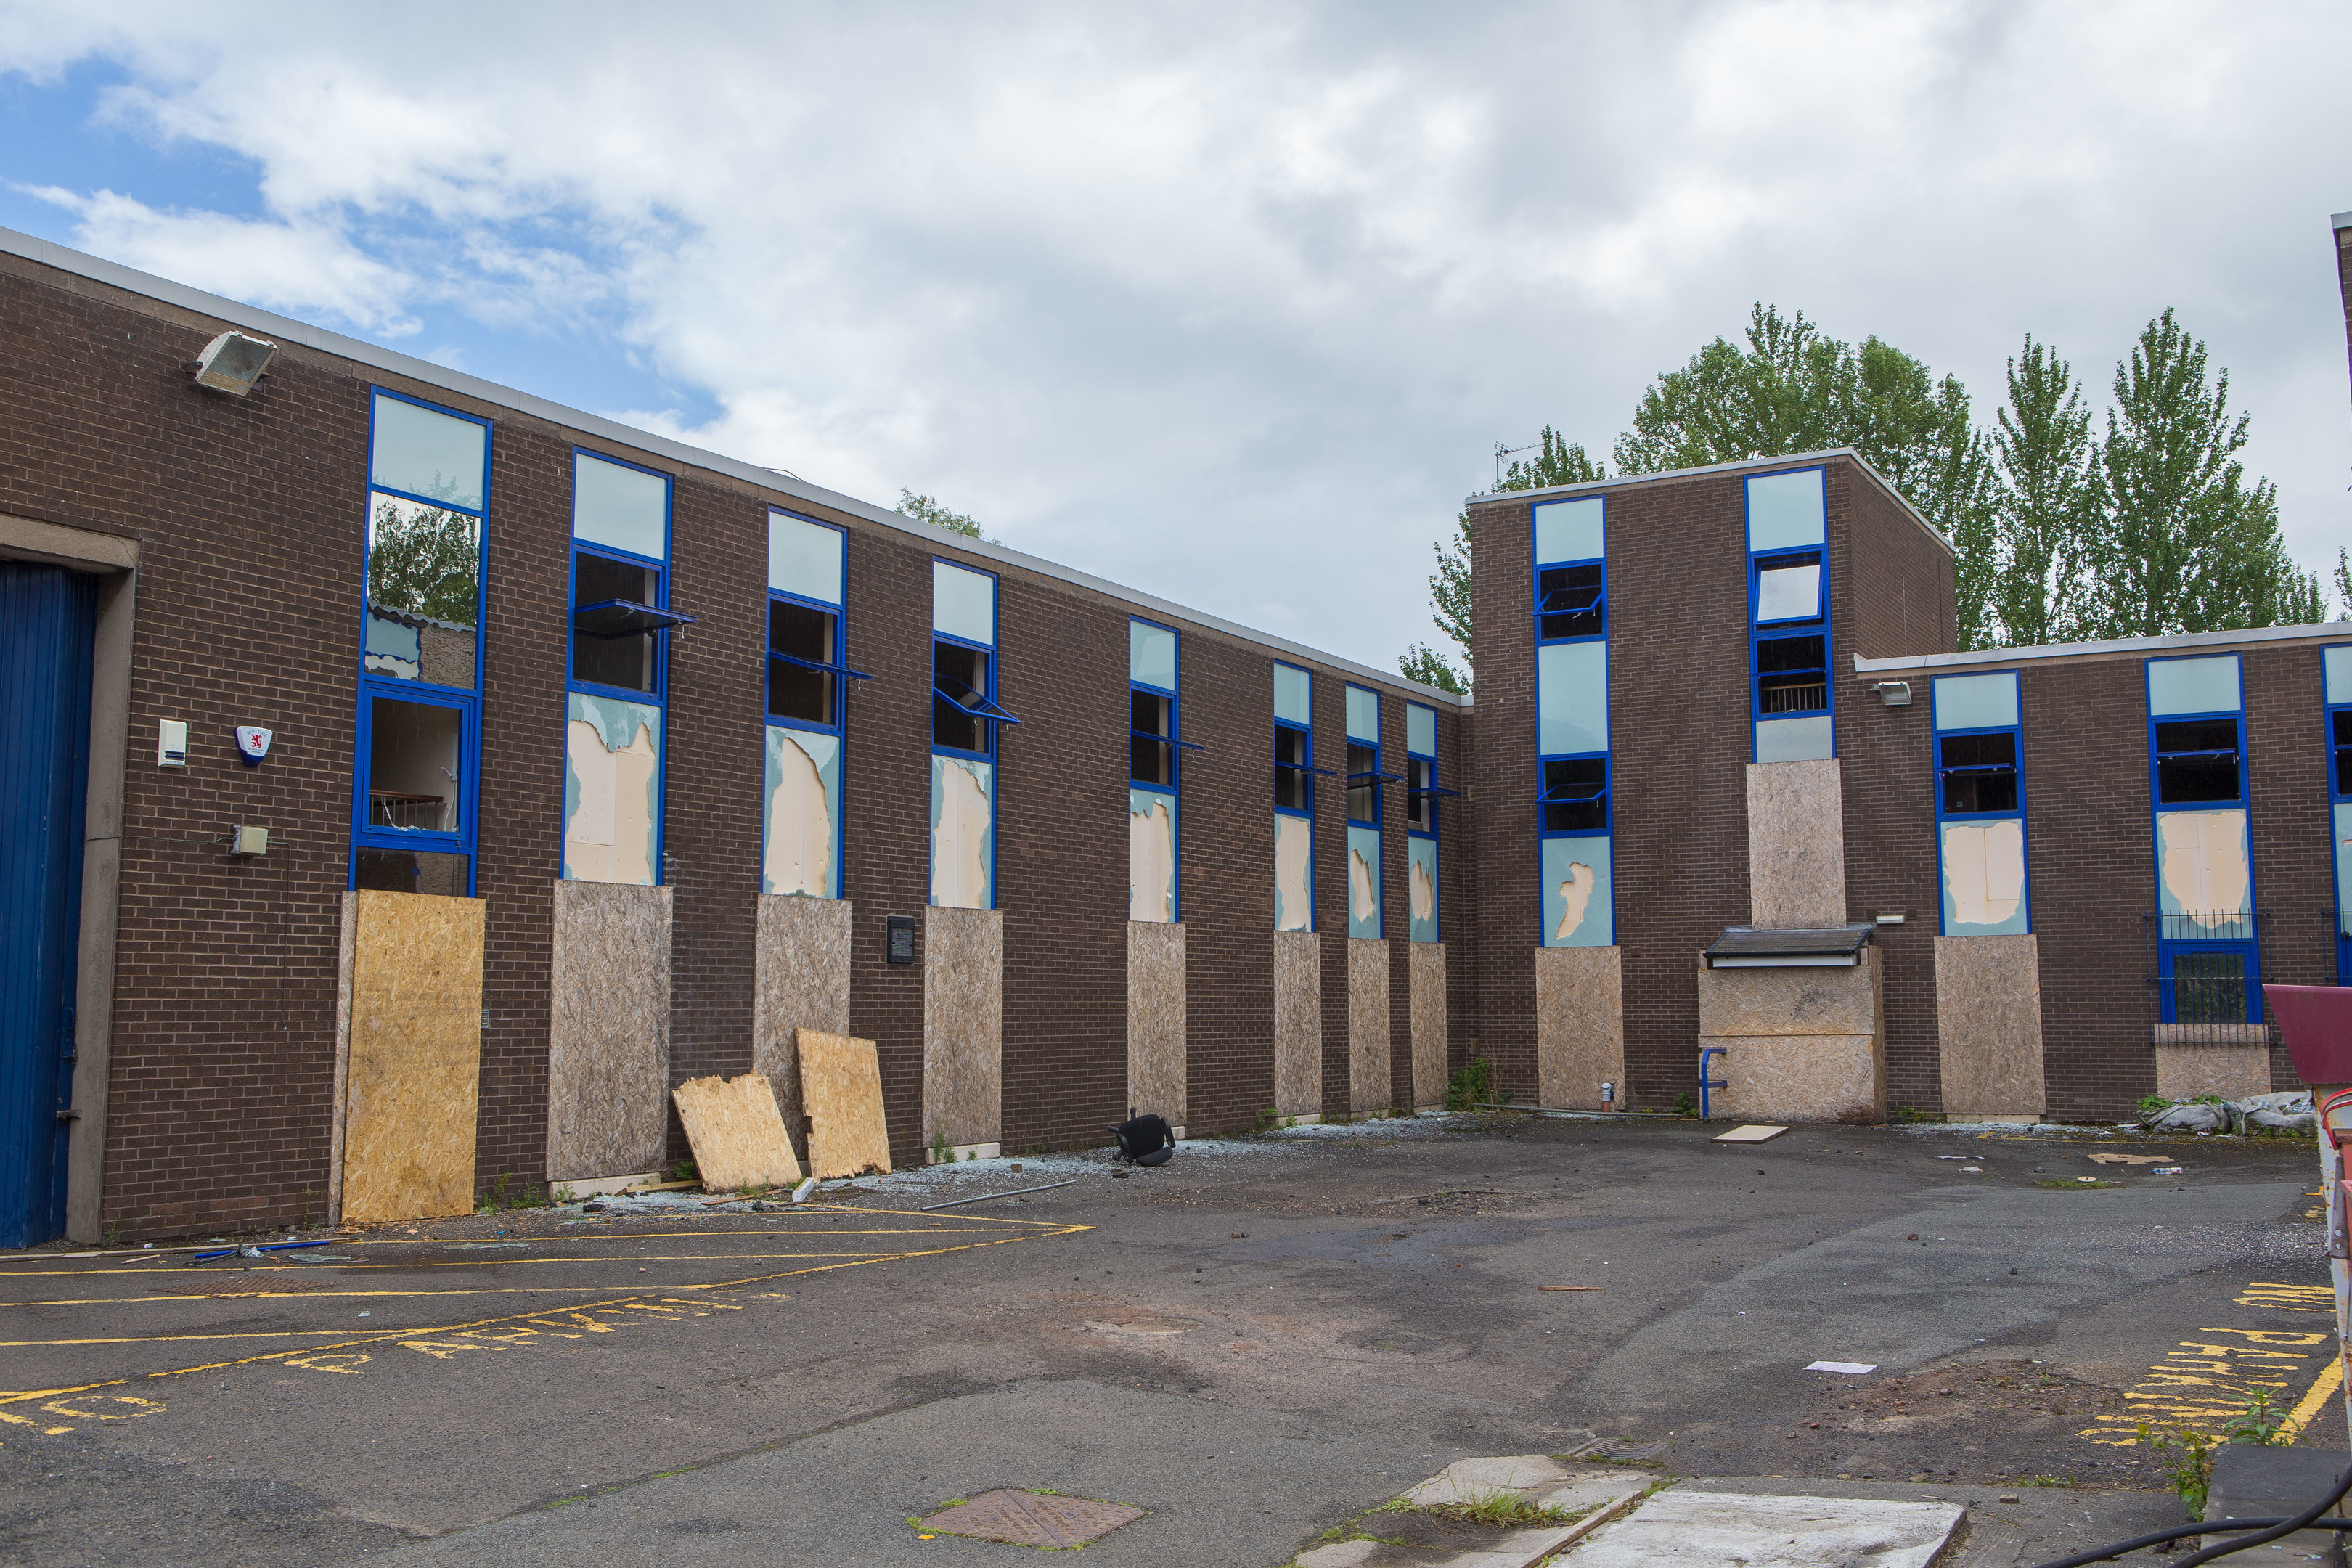 The former police station on Napier Road was set alight in June.